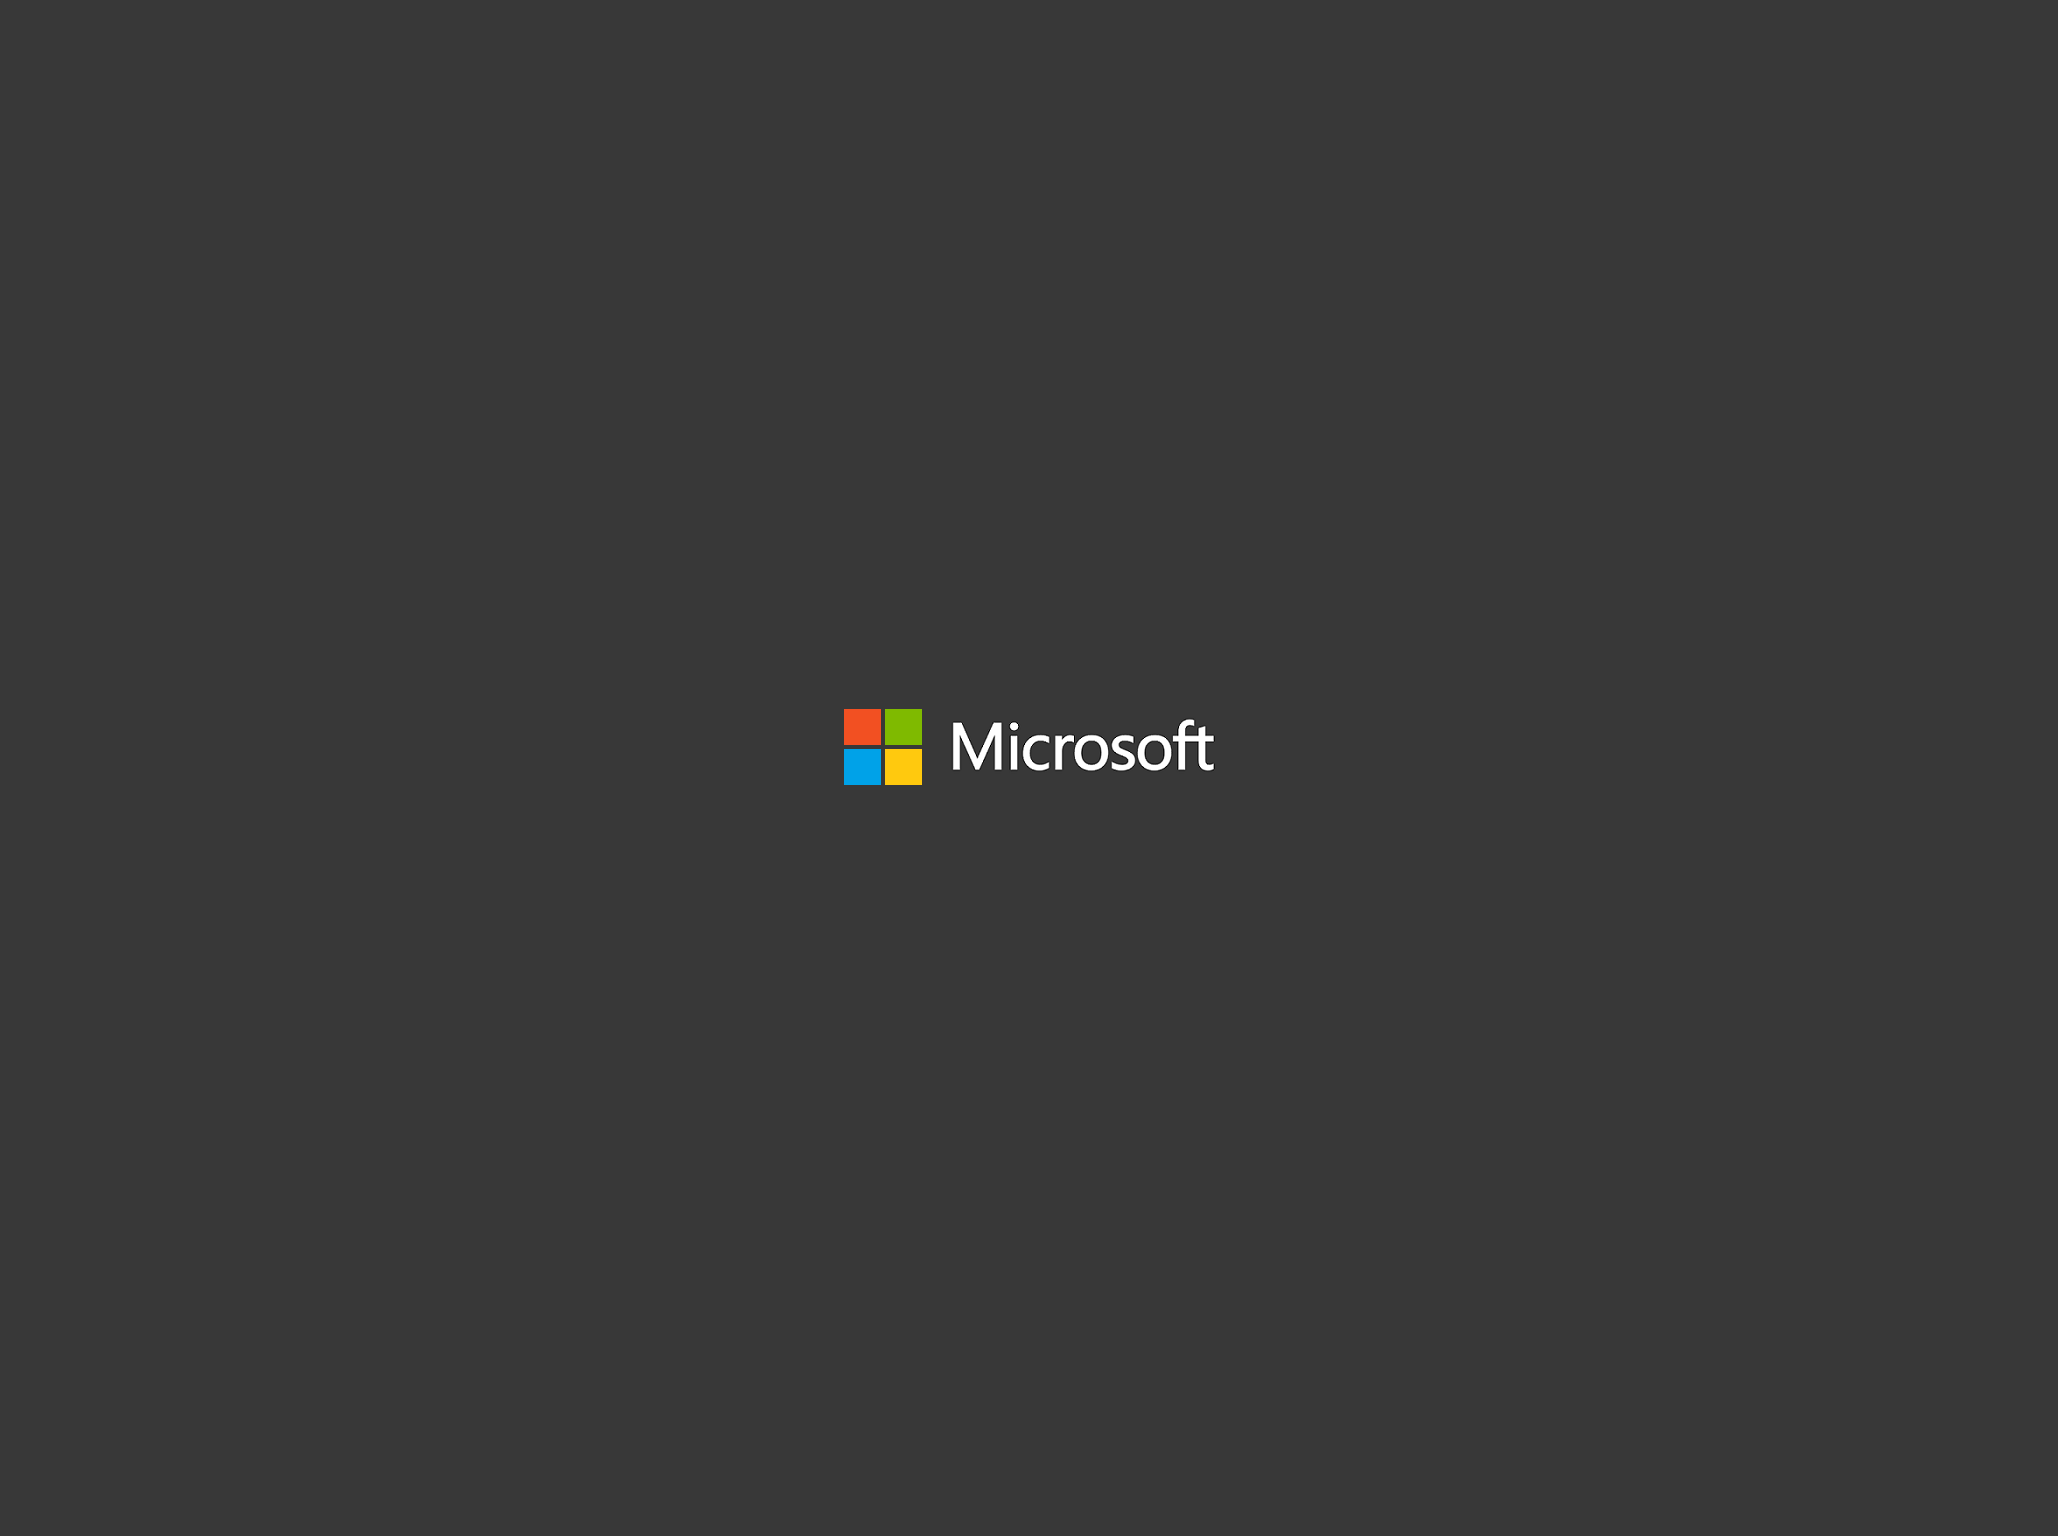 Microsoft 2058x1536 - High Definition Backgrounds